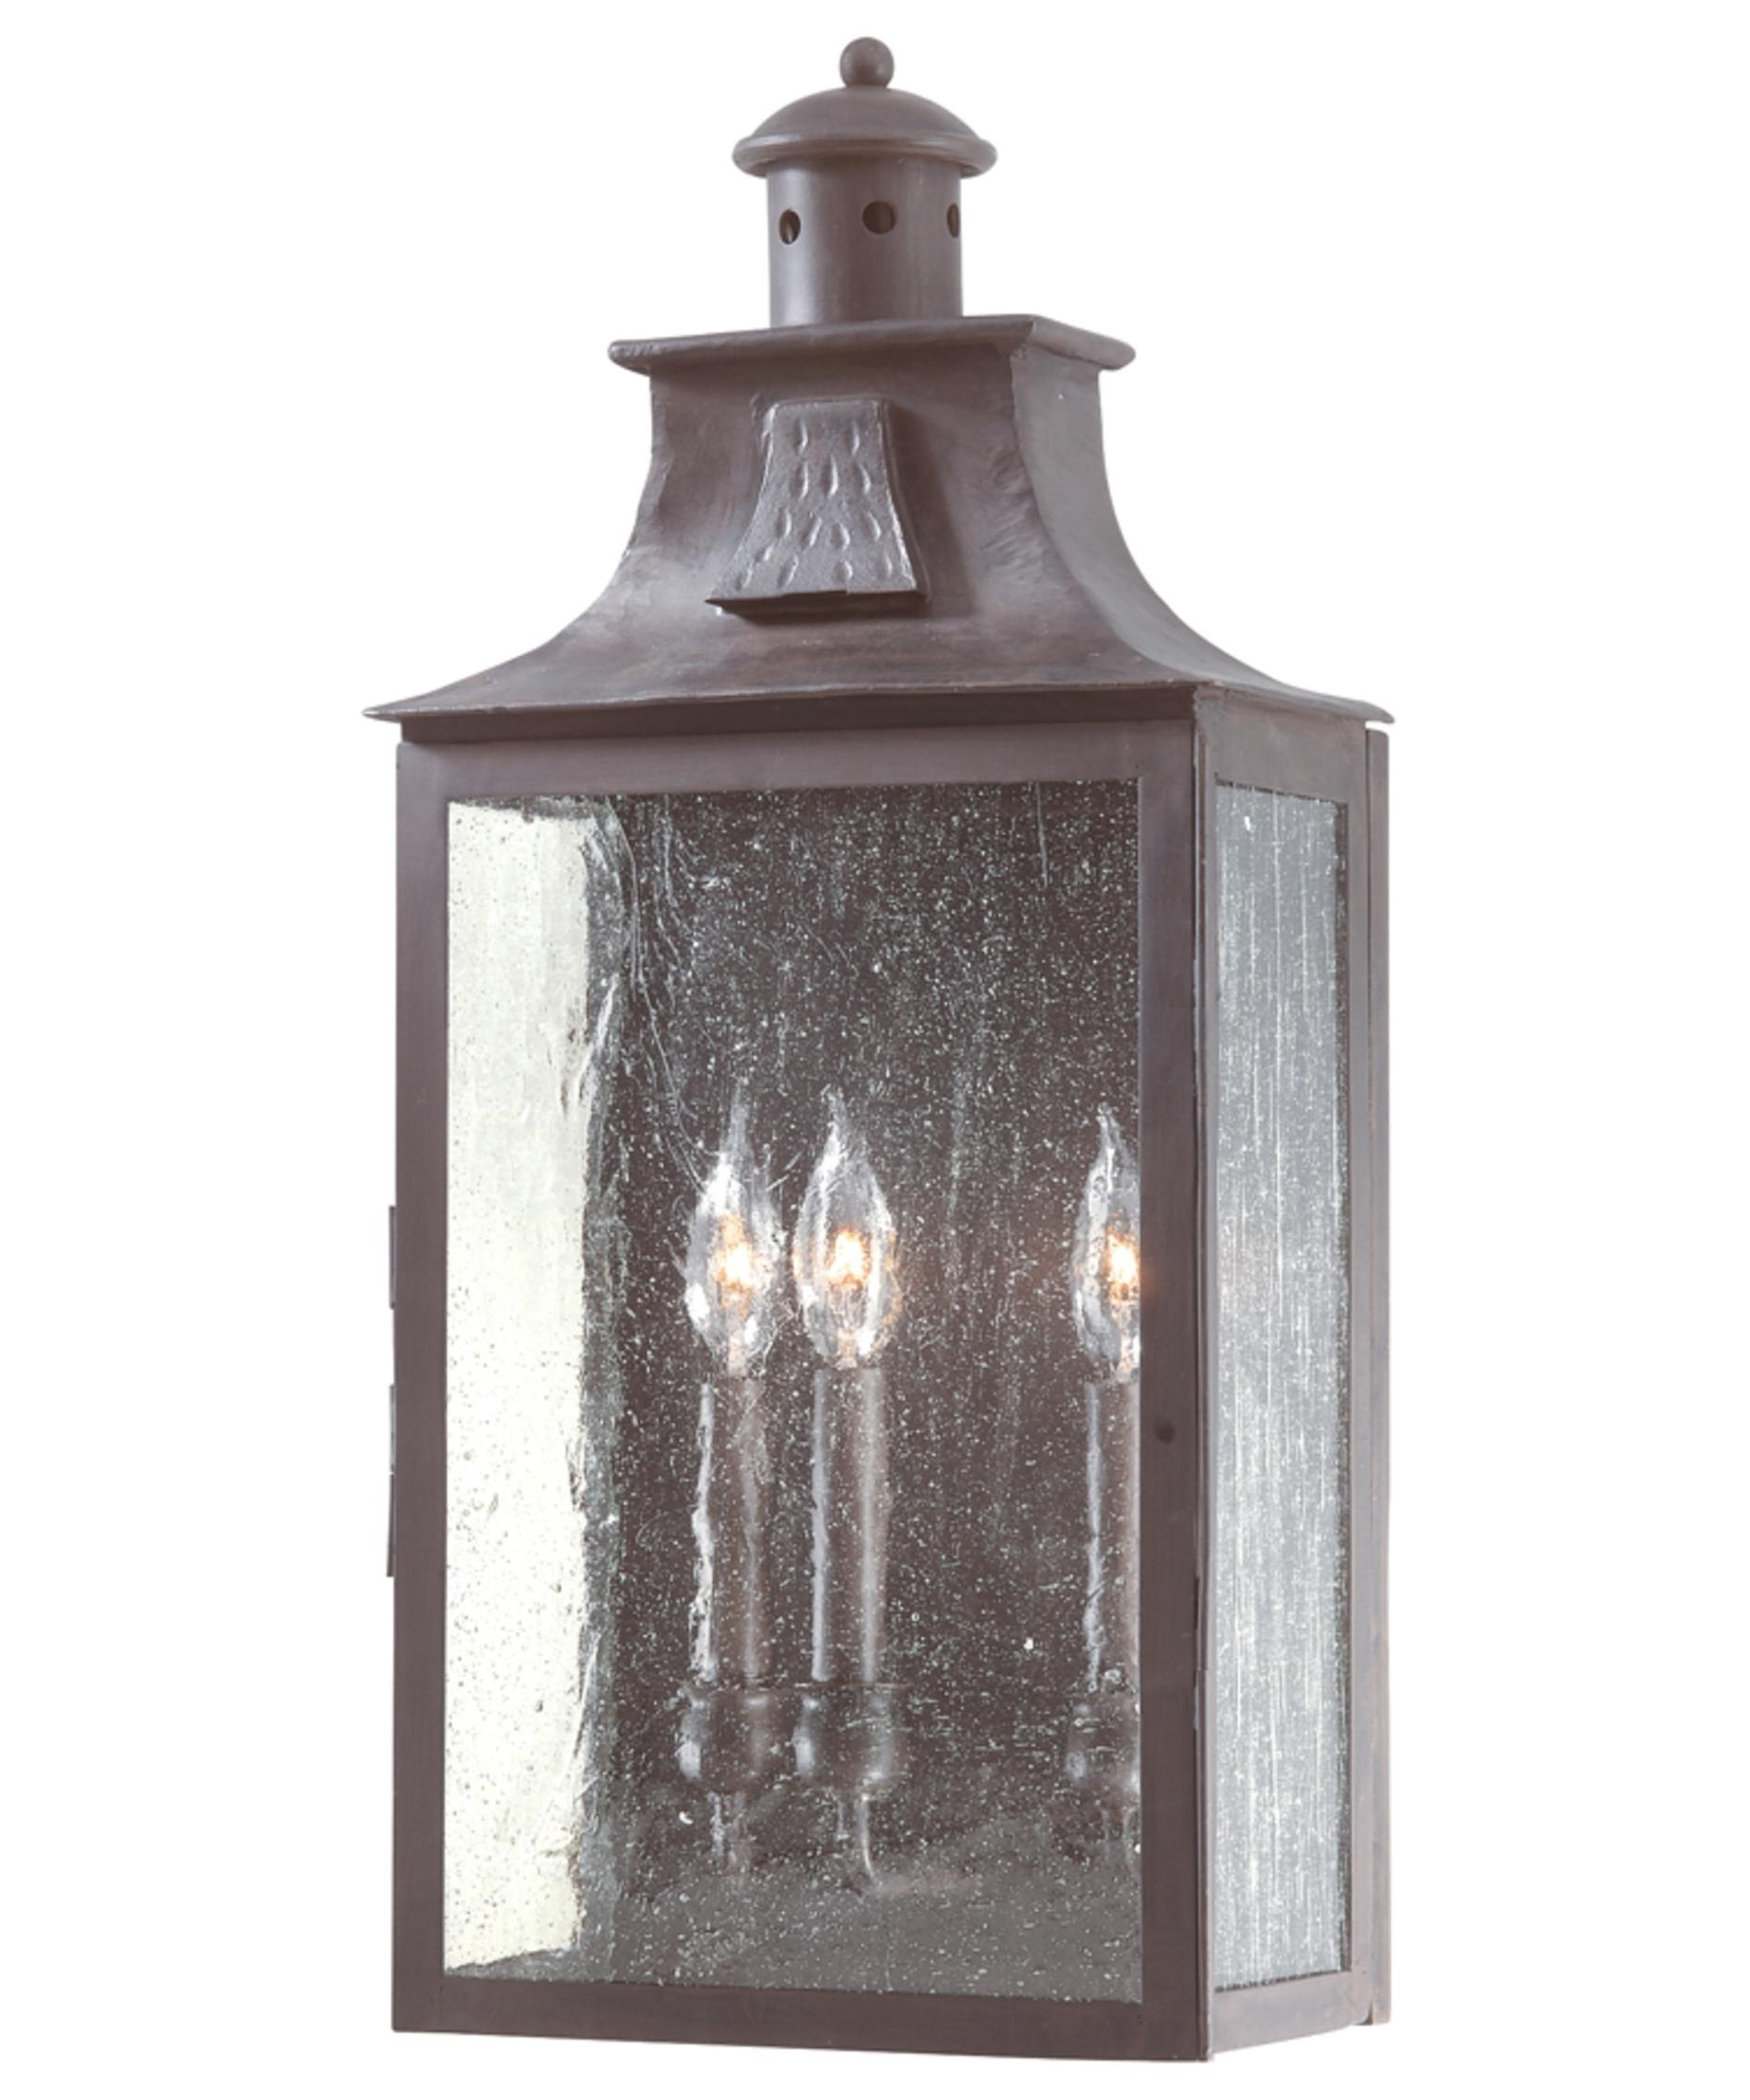 Outdoor Wall Lighting With Seeded Glass Throughout Preferred Troy Lighting B9009 Newton 11 Inch Wide 3 Light Outdoor Wall Light (View 3 of 20)